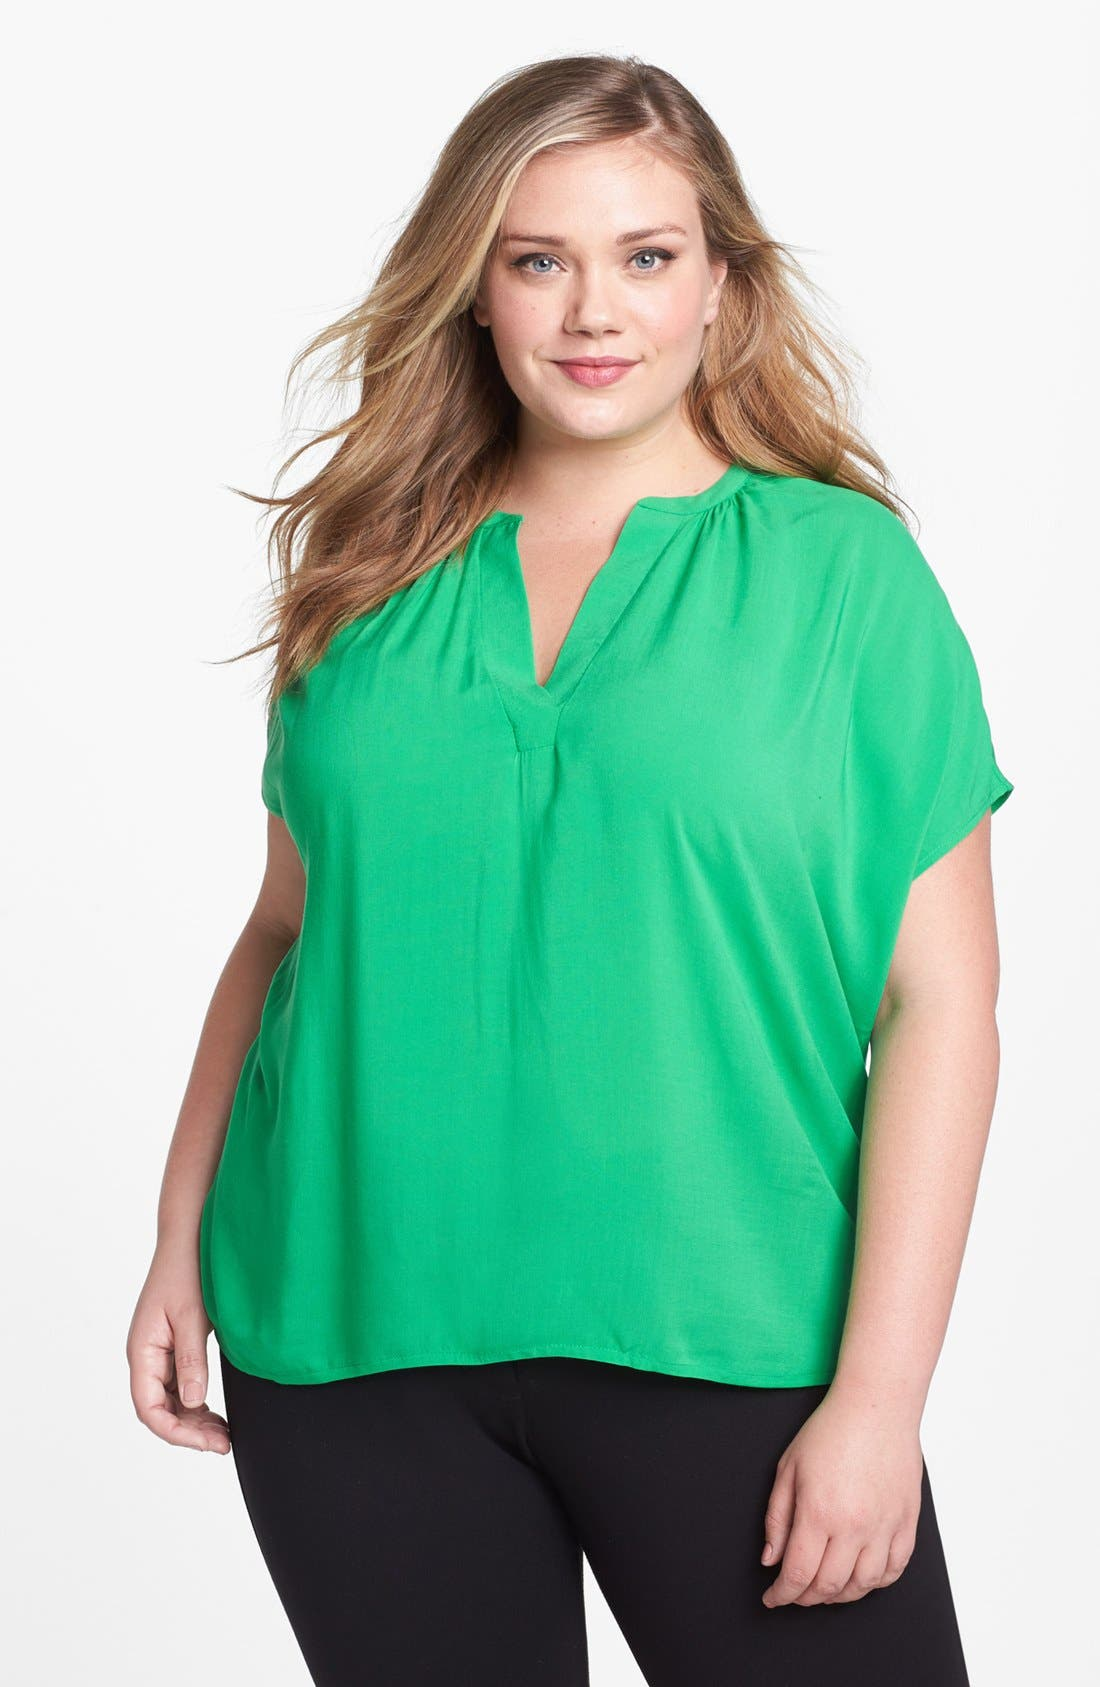 Alternate Image 1 Selected - Two by Vince Camuto Mixed Media Blouse (Plus Size)